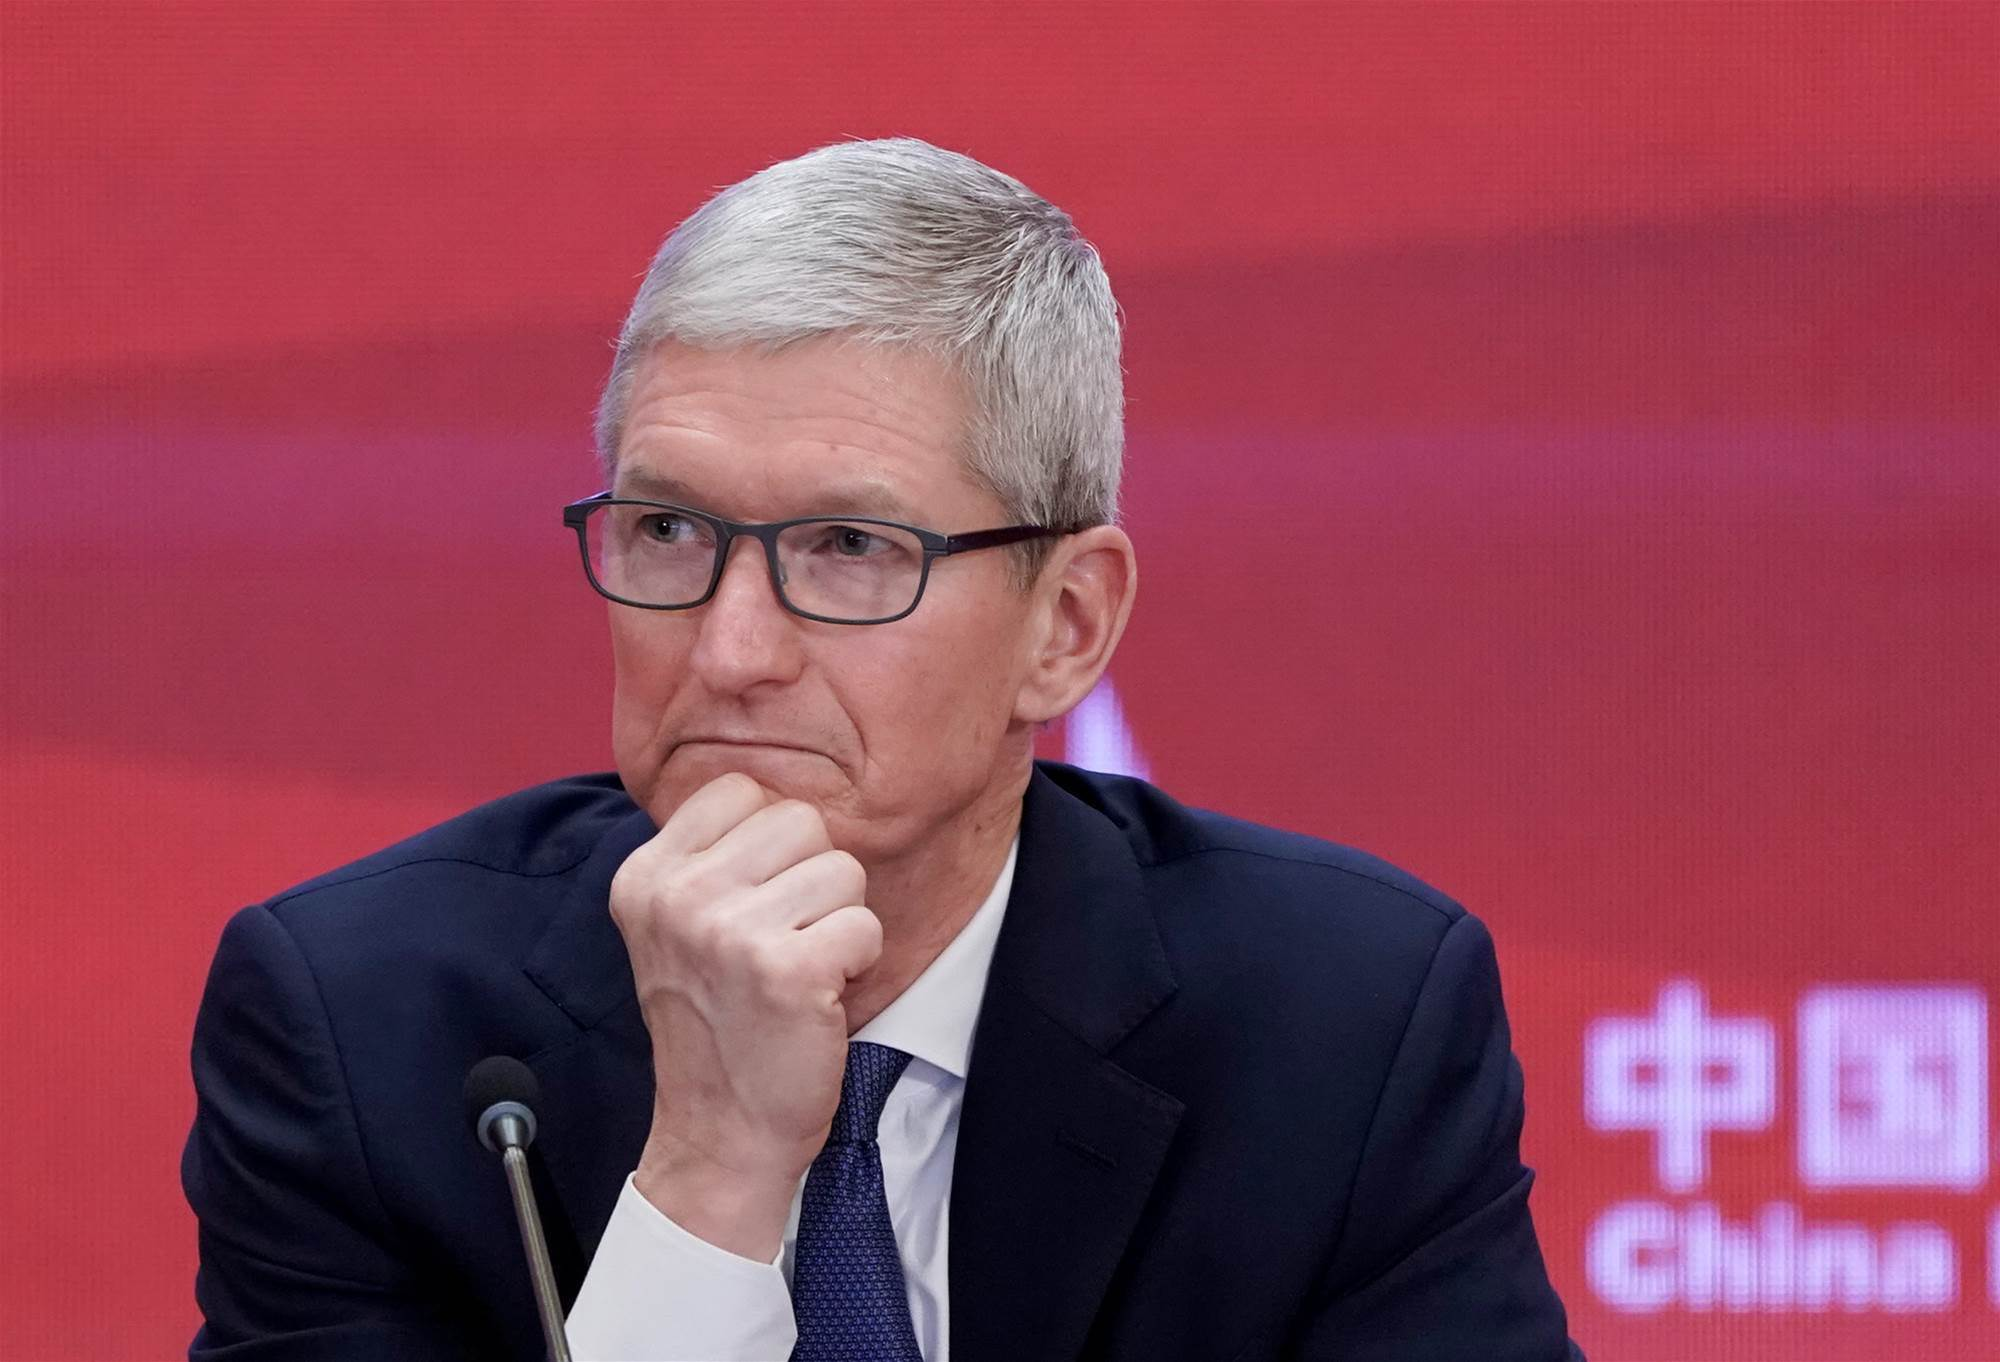 Apple, IBM chiefs call for more data oversight after Facebook leak